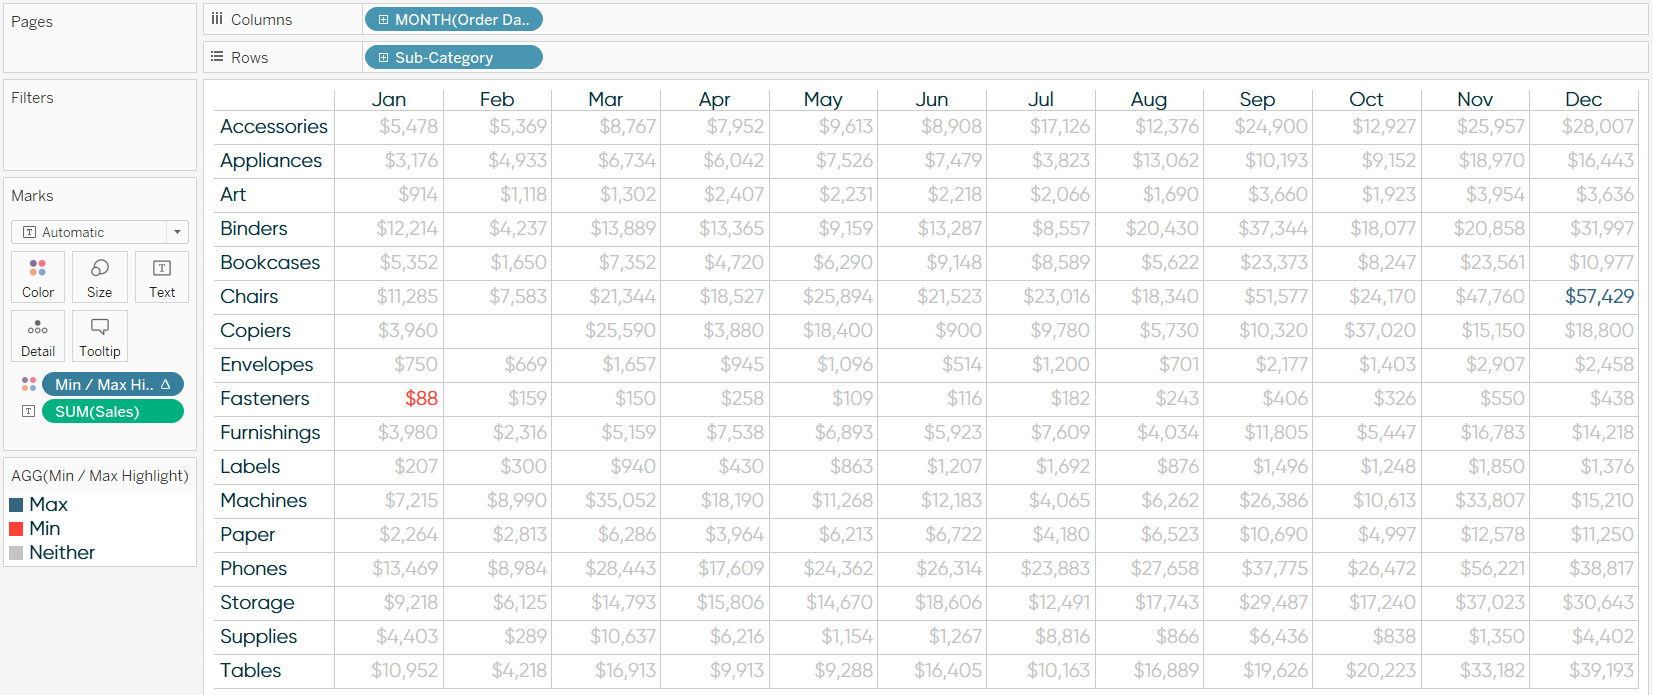 Tableau Crosstab and MIN and MAX Values Highlighted